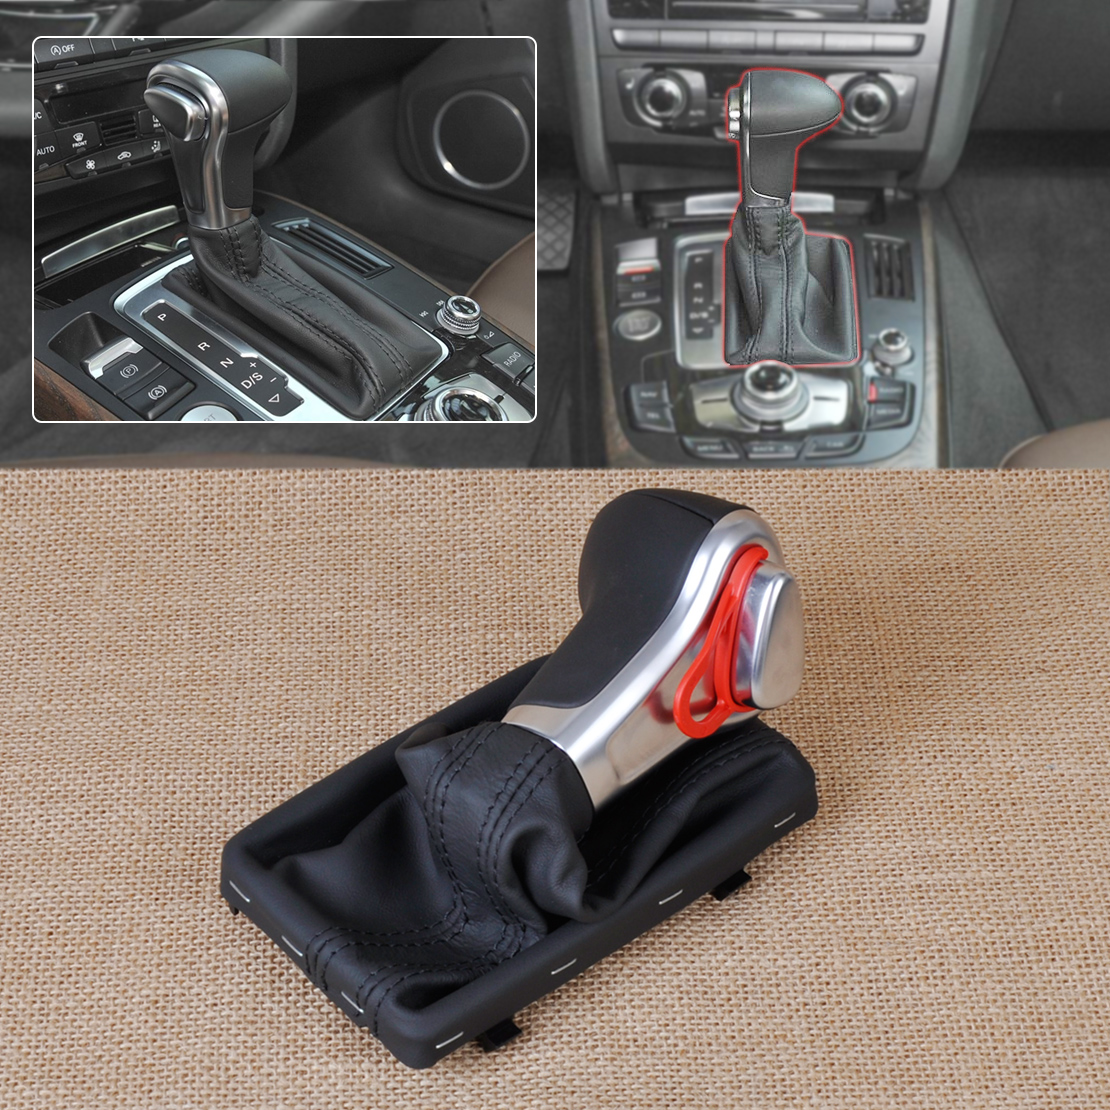 CITALL PU Leather AT Shift Knob + Gaiter for Audi A3 8P 2004-2015 A4 B8 2009-2015 A5 A6 C6 2006 - 2011 Q7 Q5 2009 2010 2011-2015